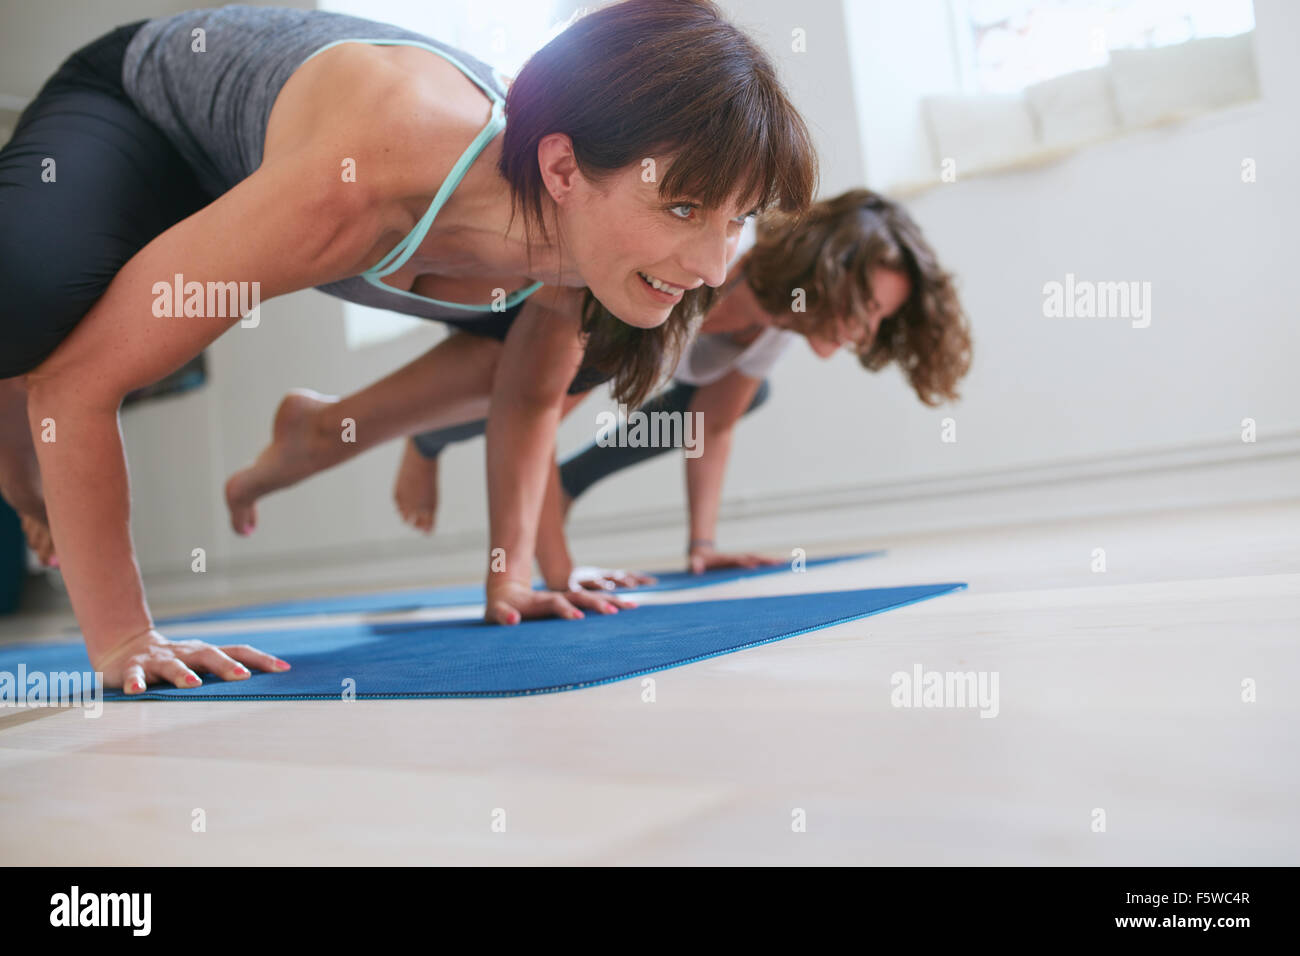 Two women at yoga class doing yoga hand stand pose. Mature woman standing on hands with feet lifted up doing crane - Stock Image